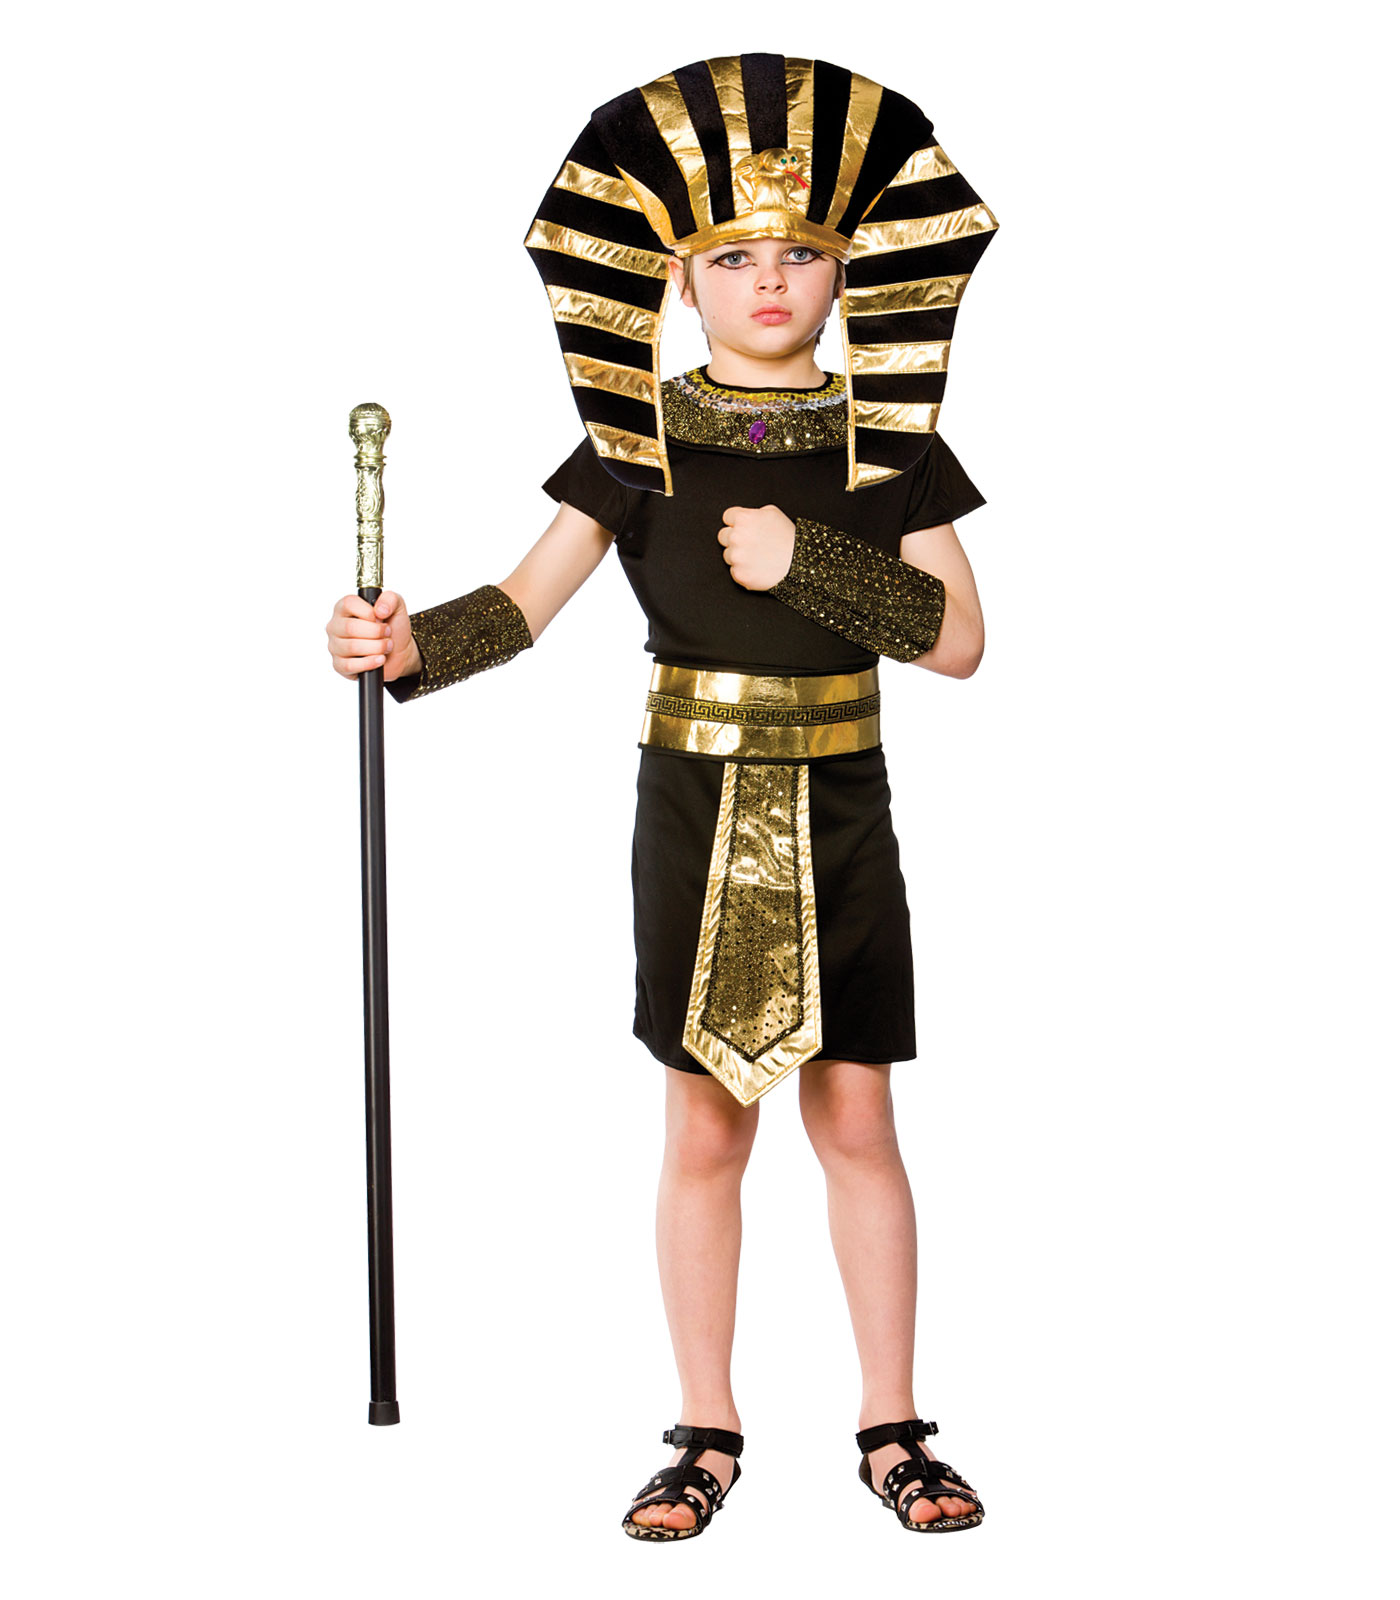 boys egyptian pharaoh costume fancy dress up halloween party historical king tut - Egyptian Halloween Costumes For Kids